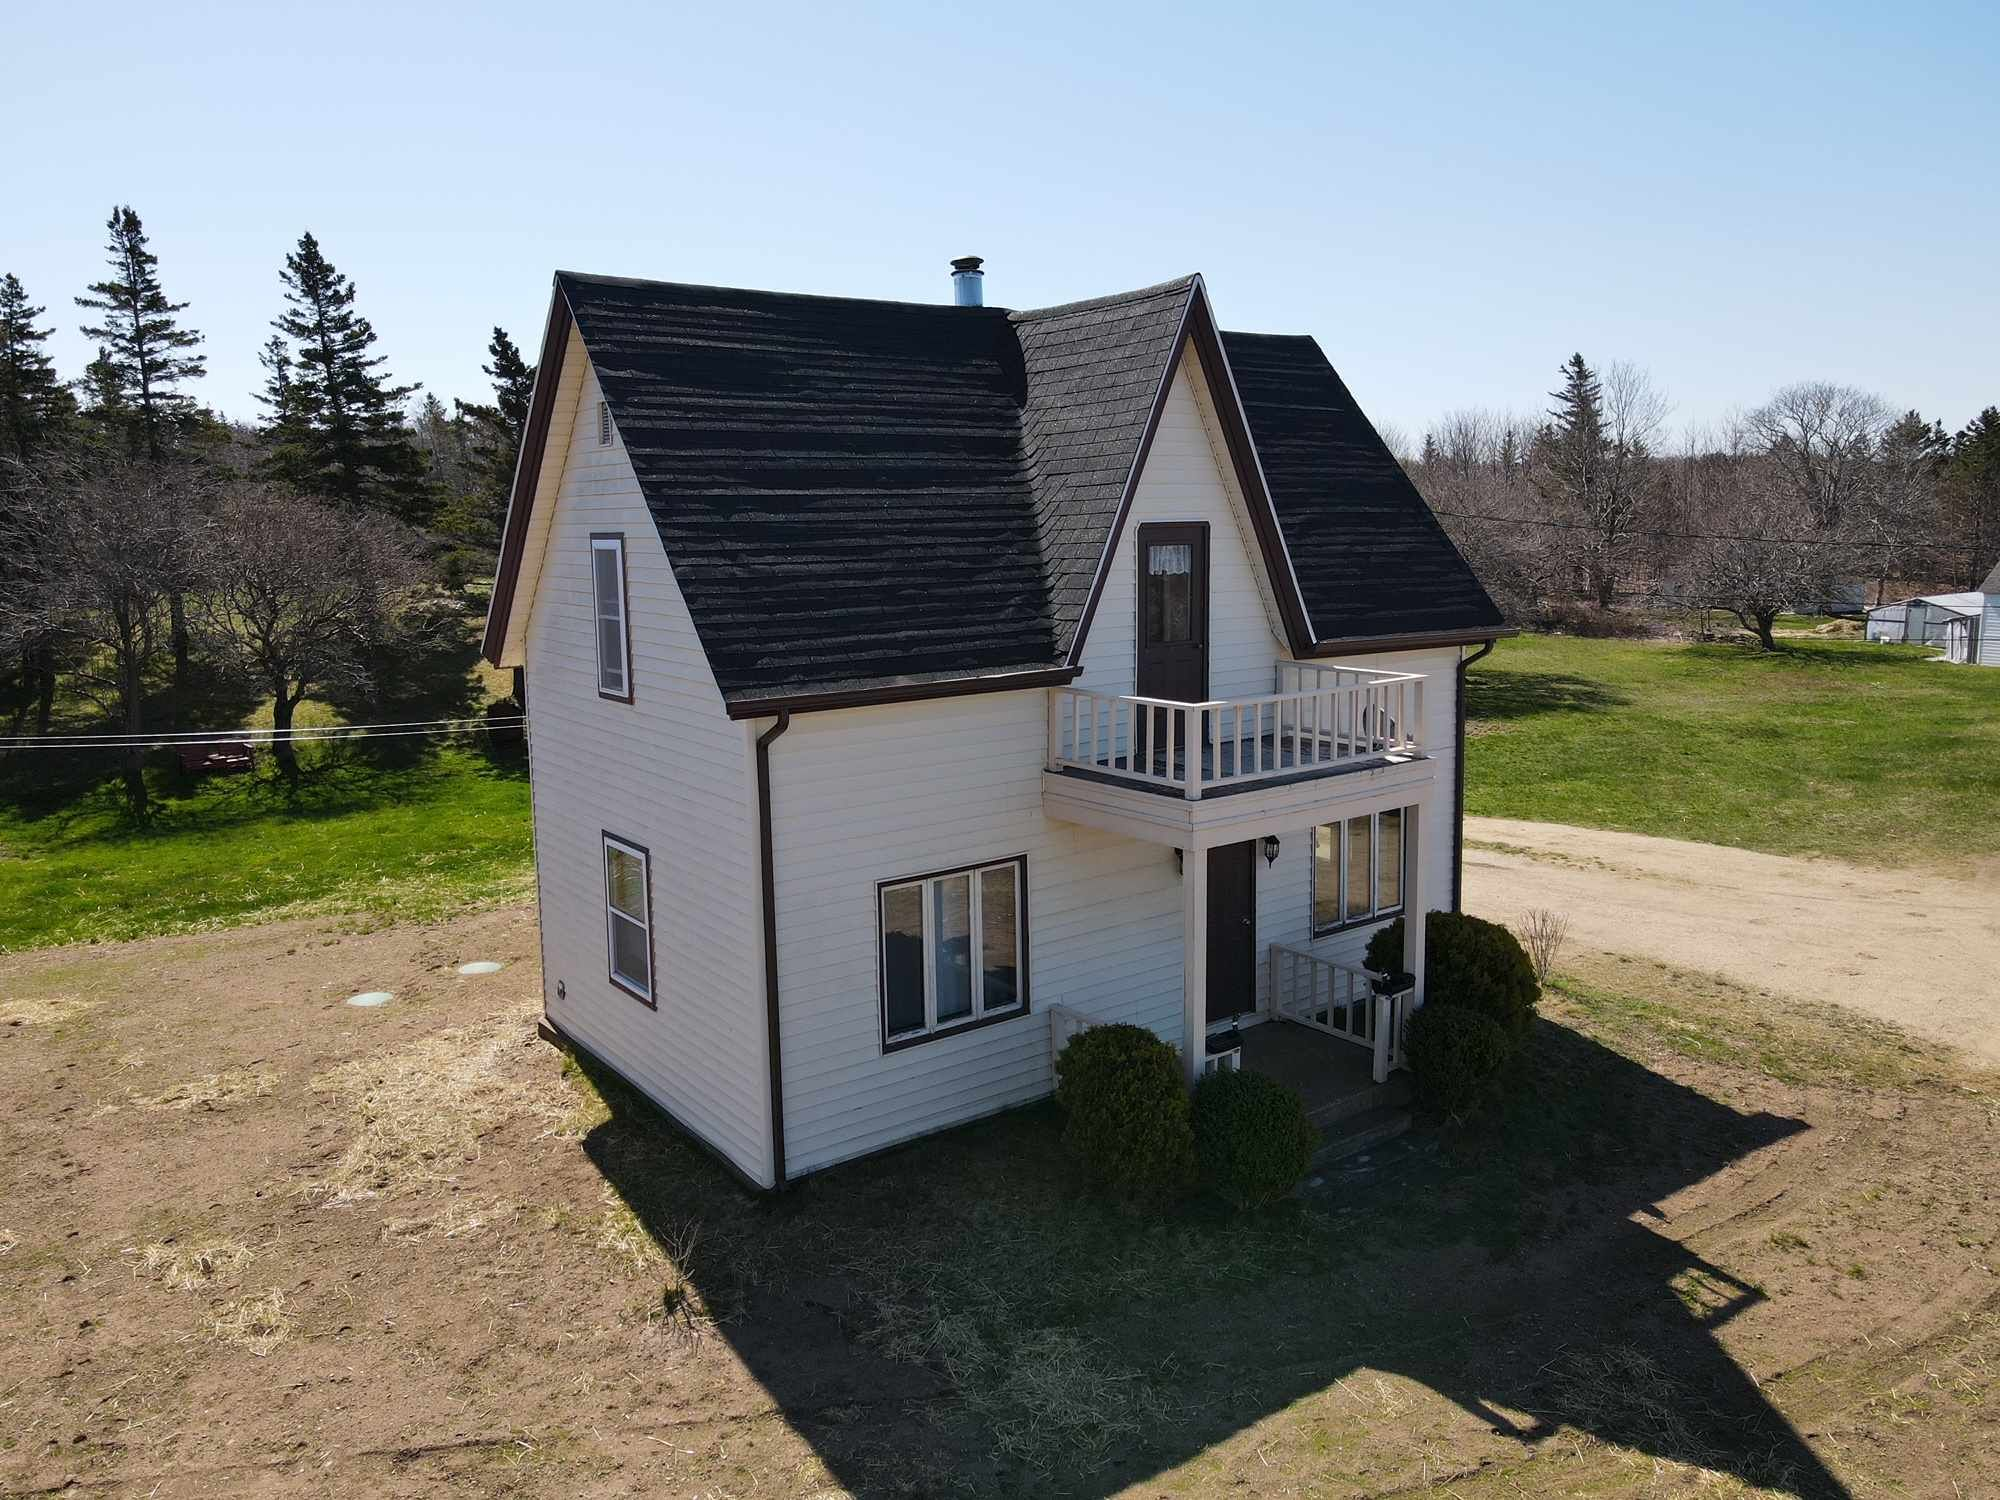 Main Photo: 7030 HIGHWAY 101 in Plympton: 401-Digby County Residential for sale (Annapolis Valley)  : MLS®# 202109419